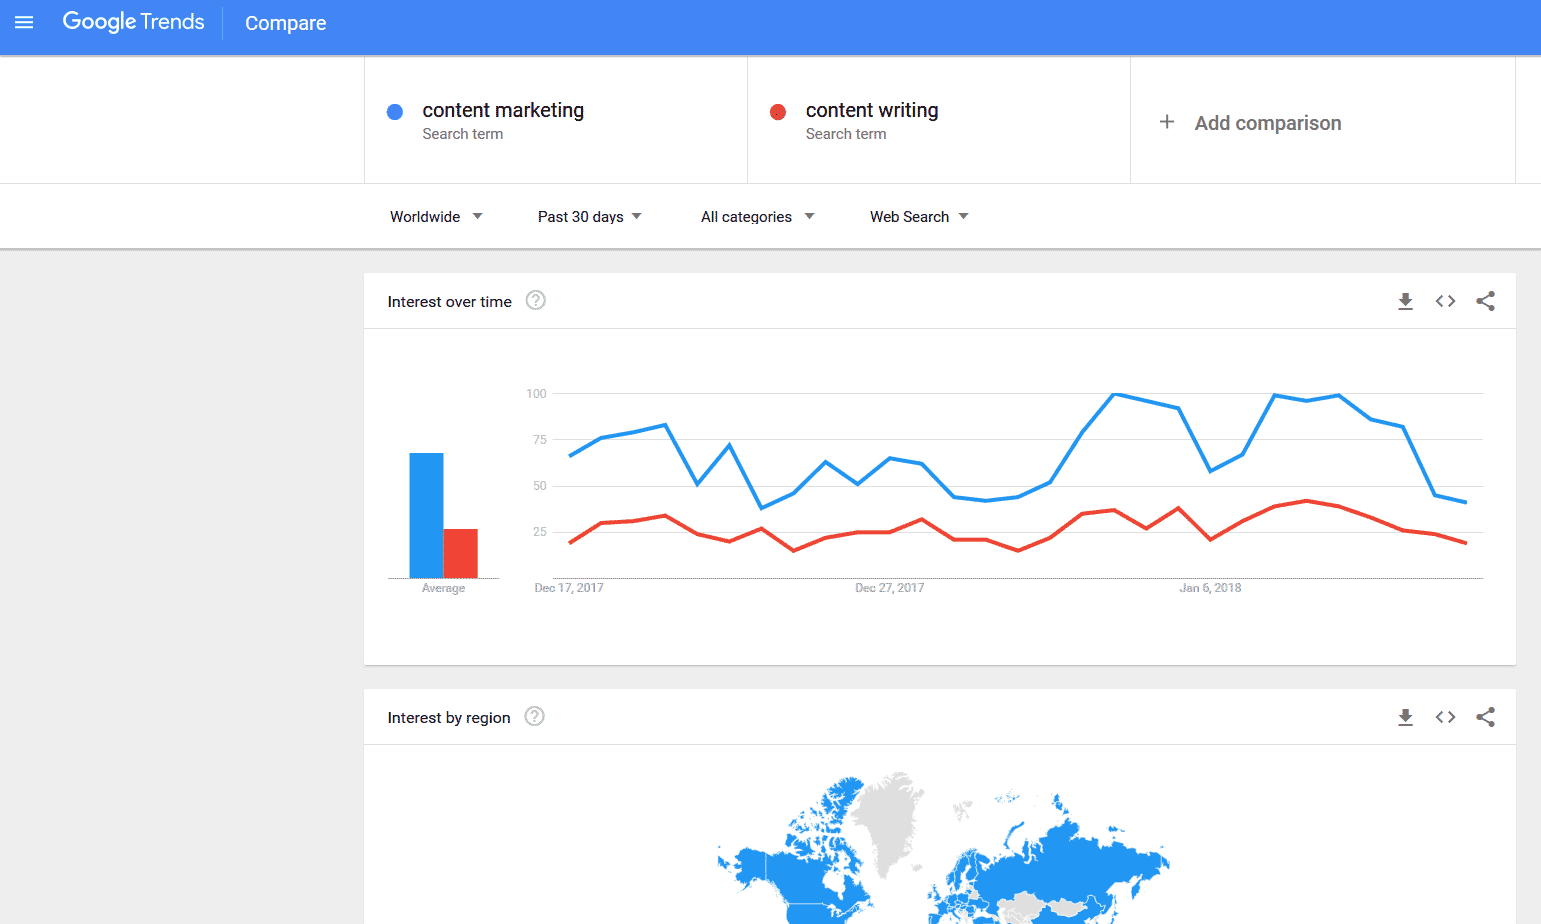 Google Trends for content marketing and content writing